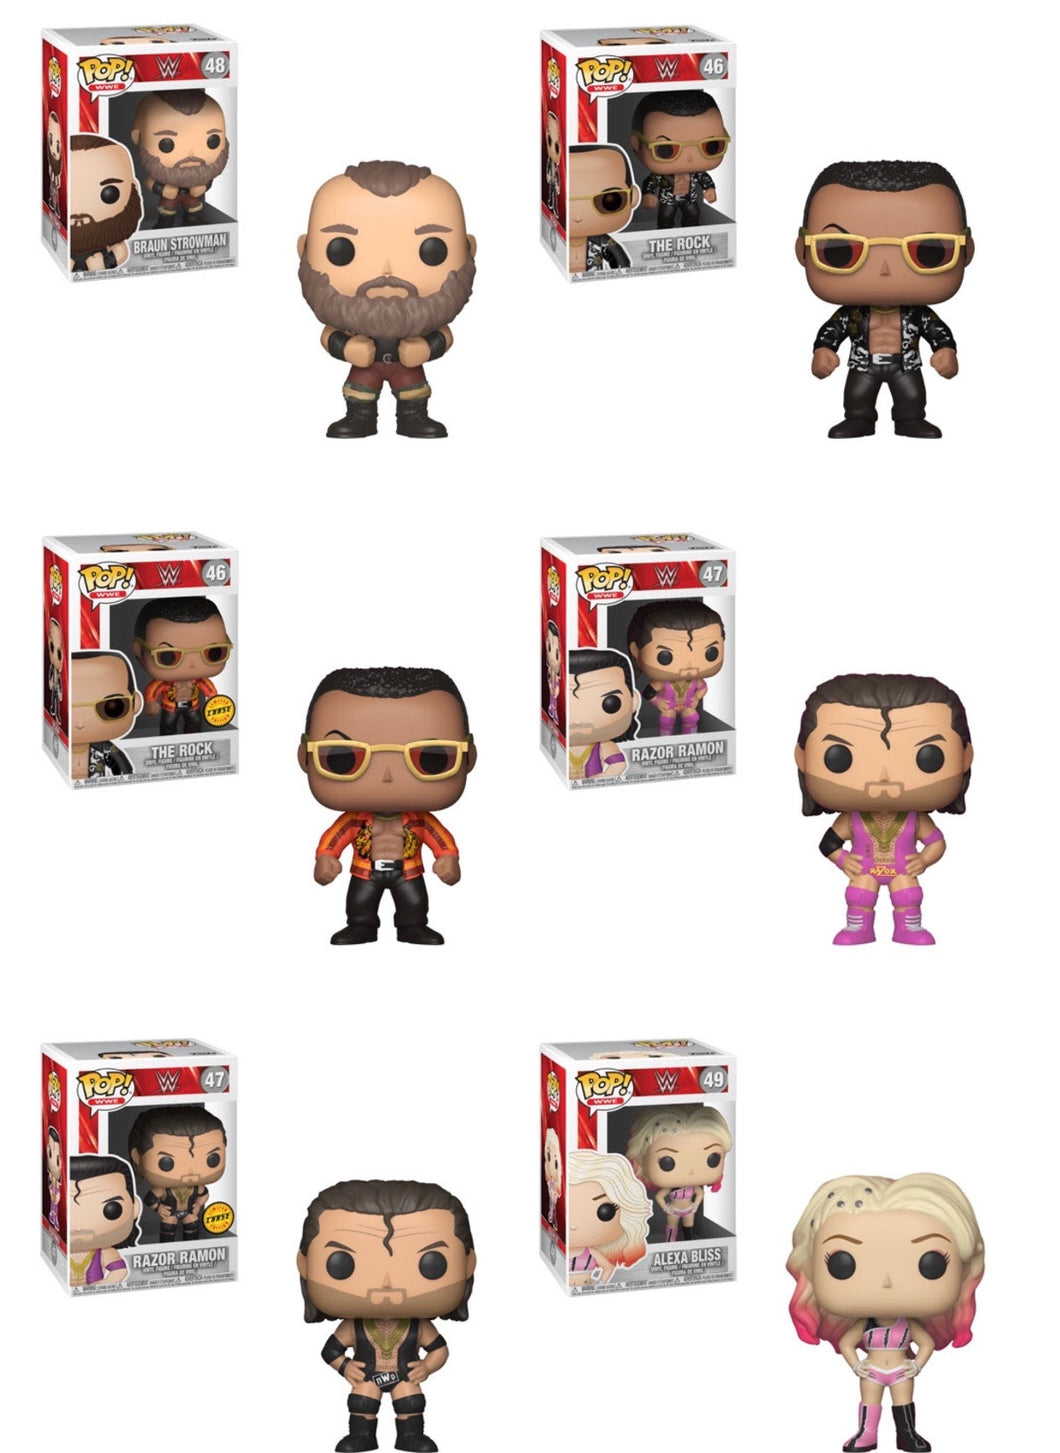 Complete Set of 6 - WWE Series 6 - Funko Pop Vinyl Figure - DECEMBER